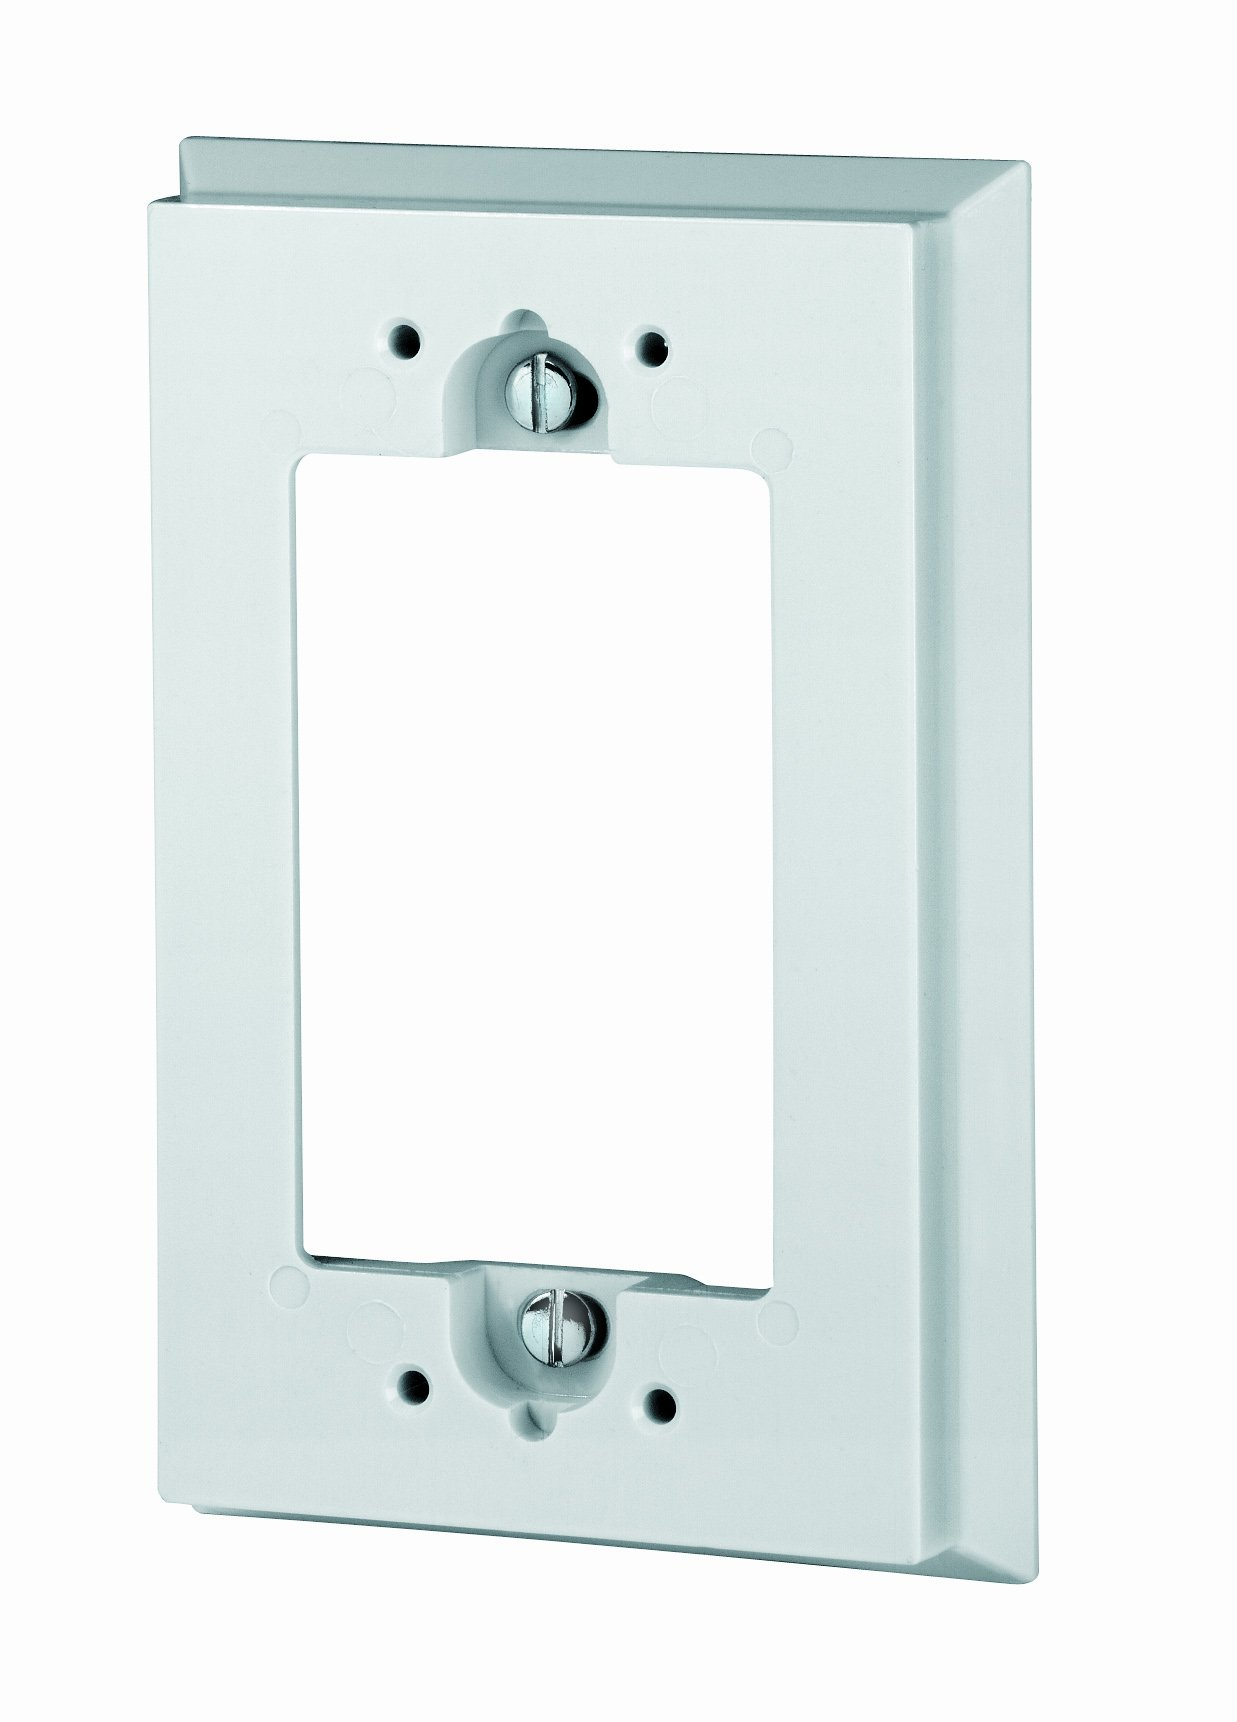 Leviton 6197-W Shallow Wallbox Extender for GFCI/Decora Device, Bulk Pack, 25 Pieces, White